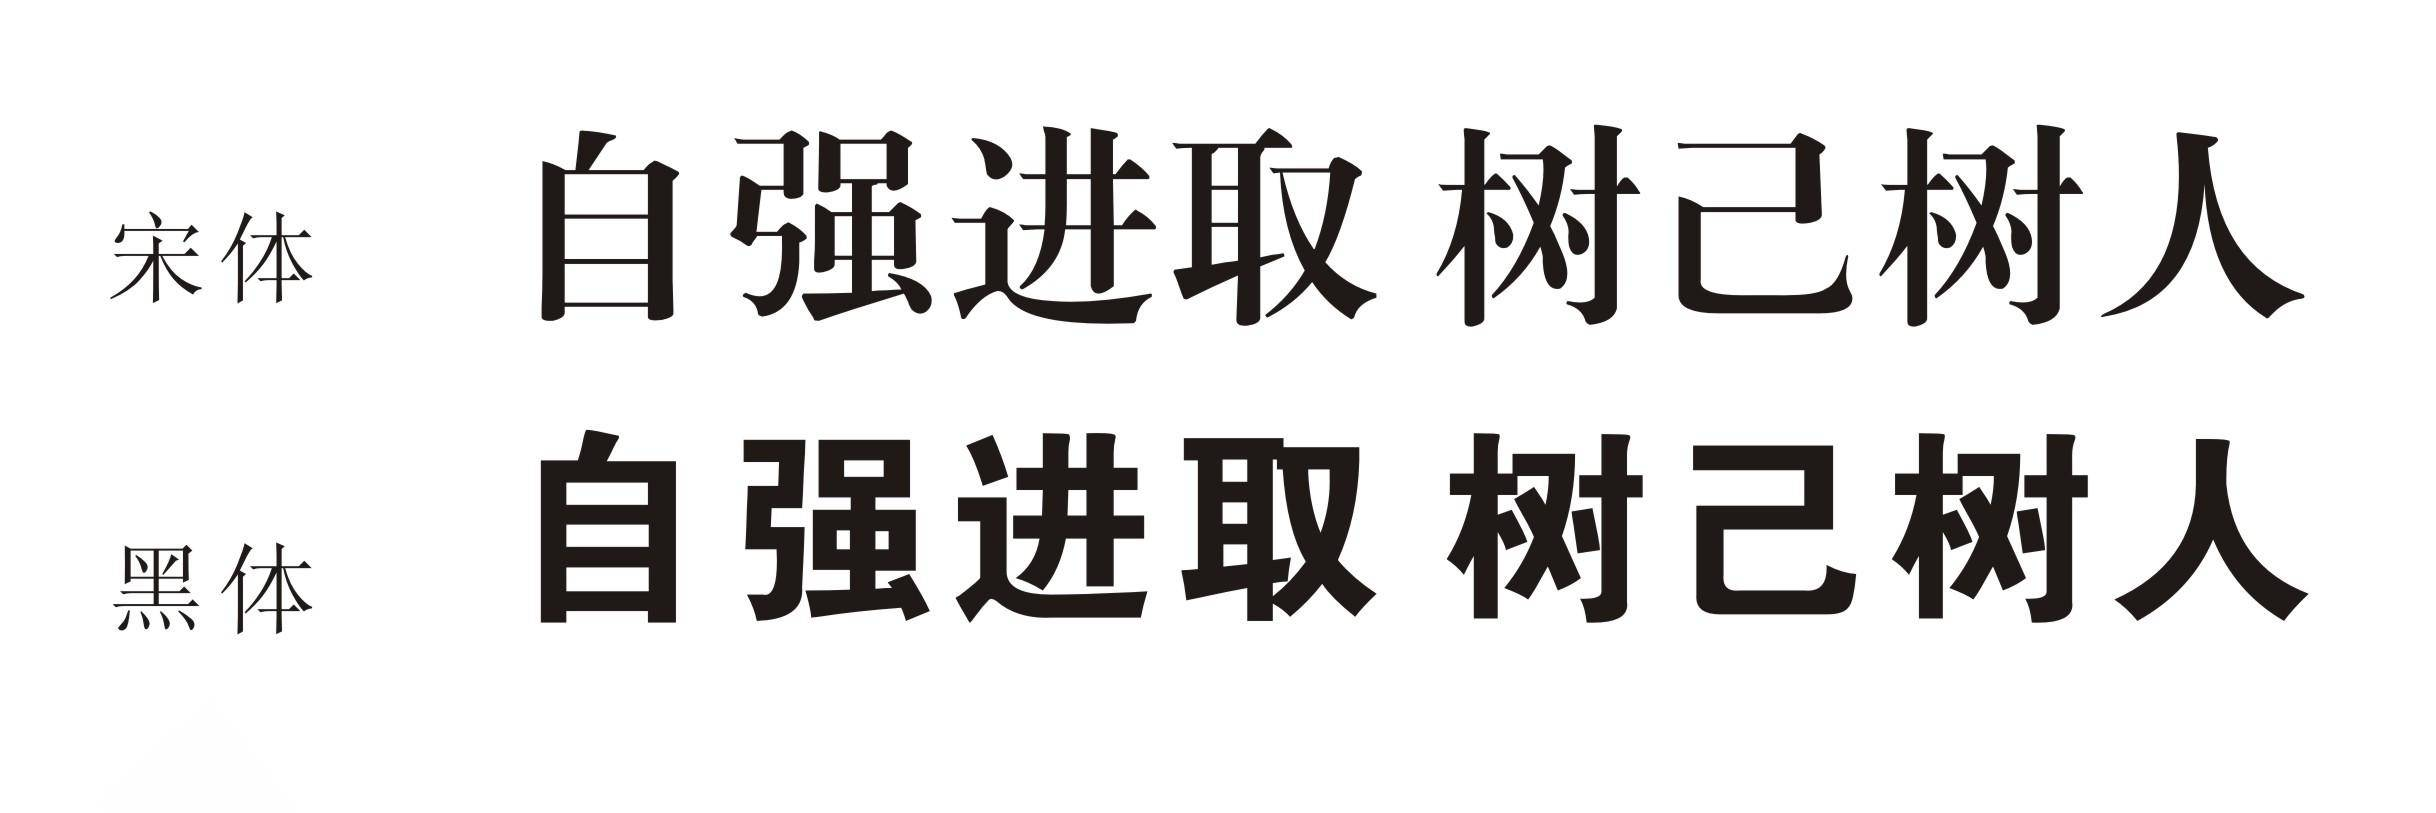 Simplified Chinese computer use